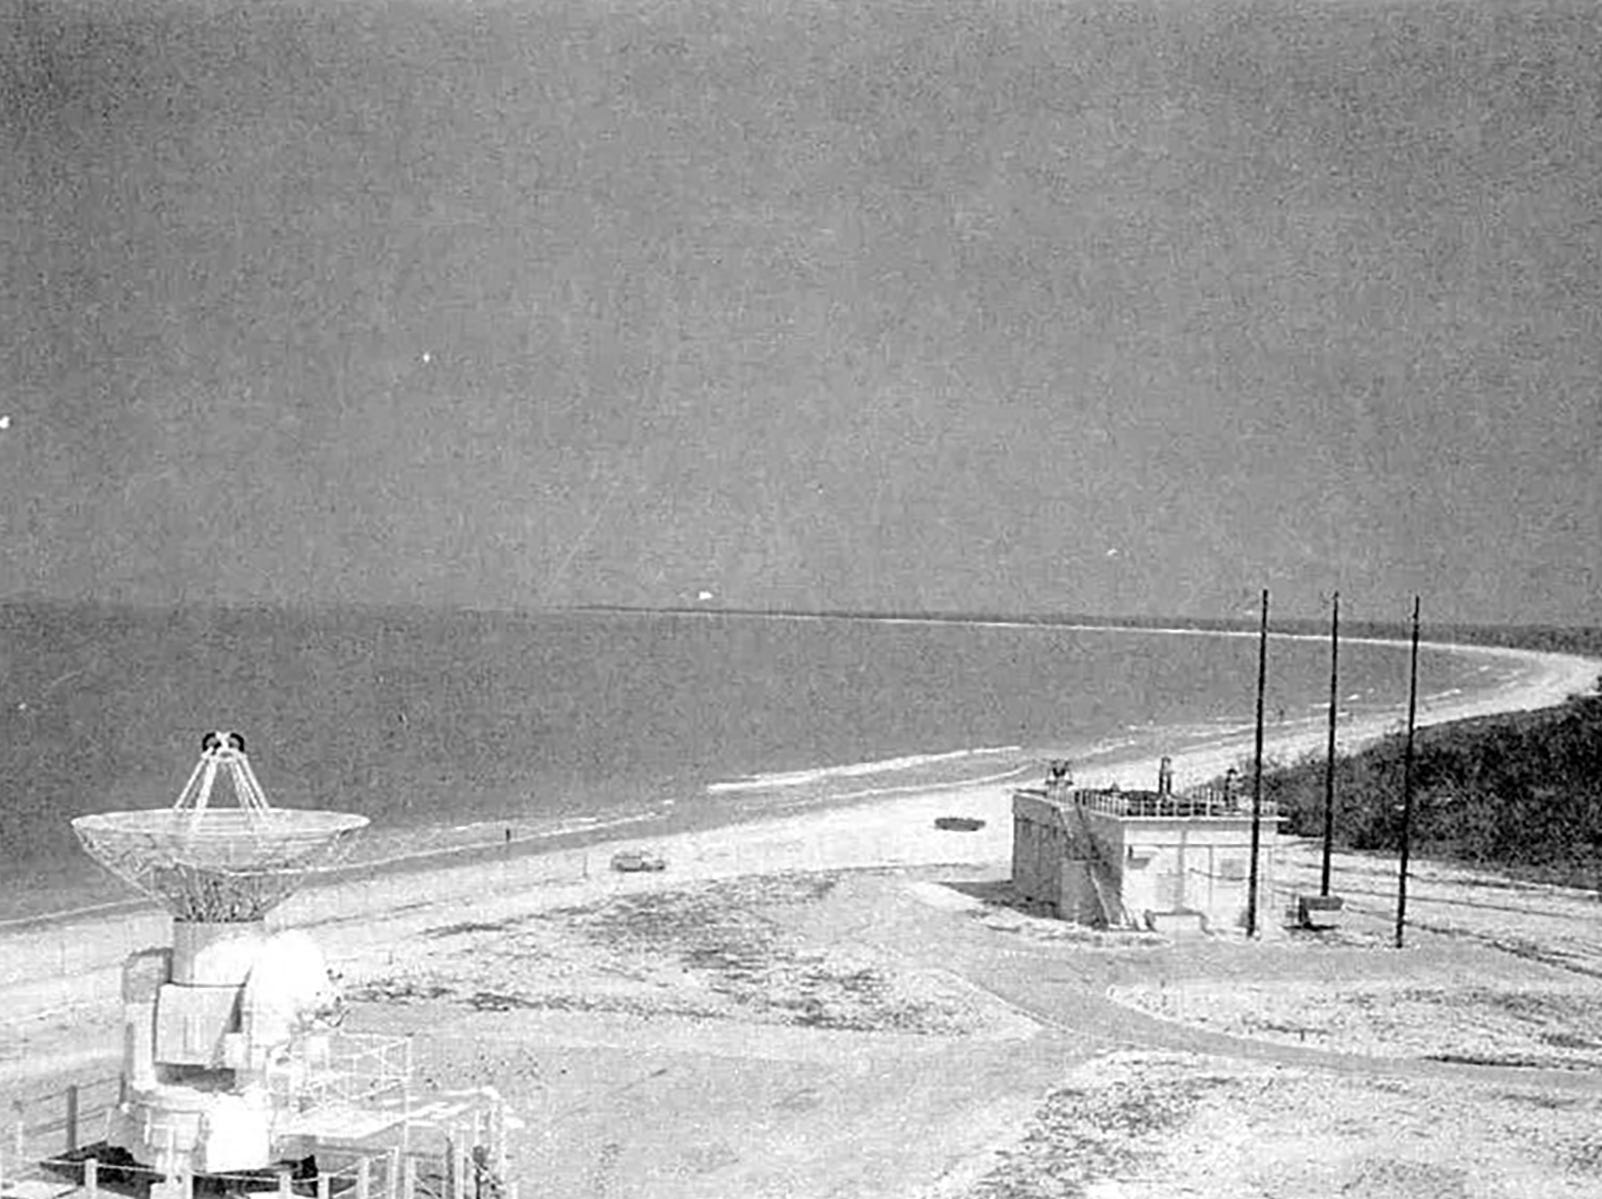 The missile tracking station showing a condo-less stretch of beach sweeping north. The southern tip of Marco Island's beach spent years during the Cold War as a missile tracking station administered by the Air Force. Photo courtesy of Craig Woodward